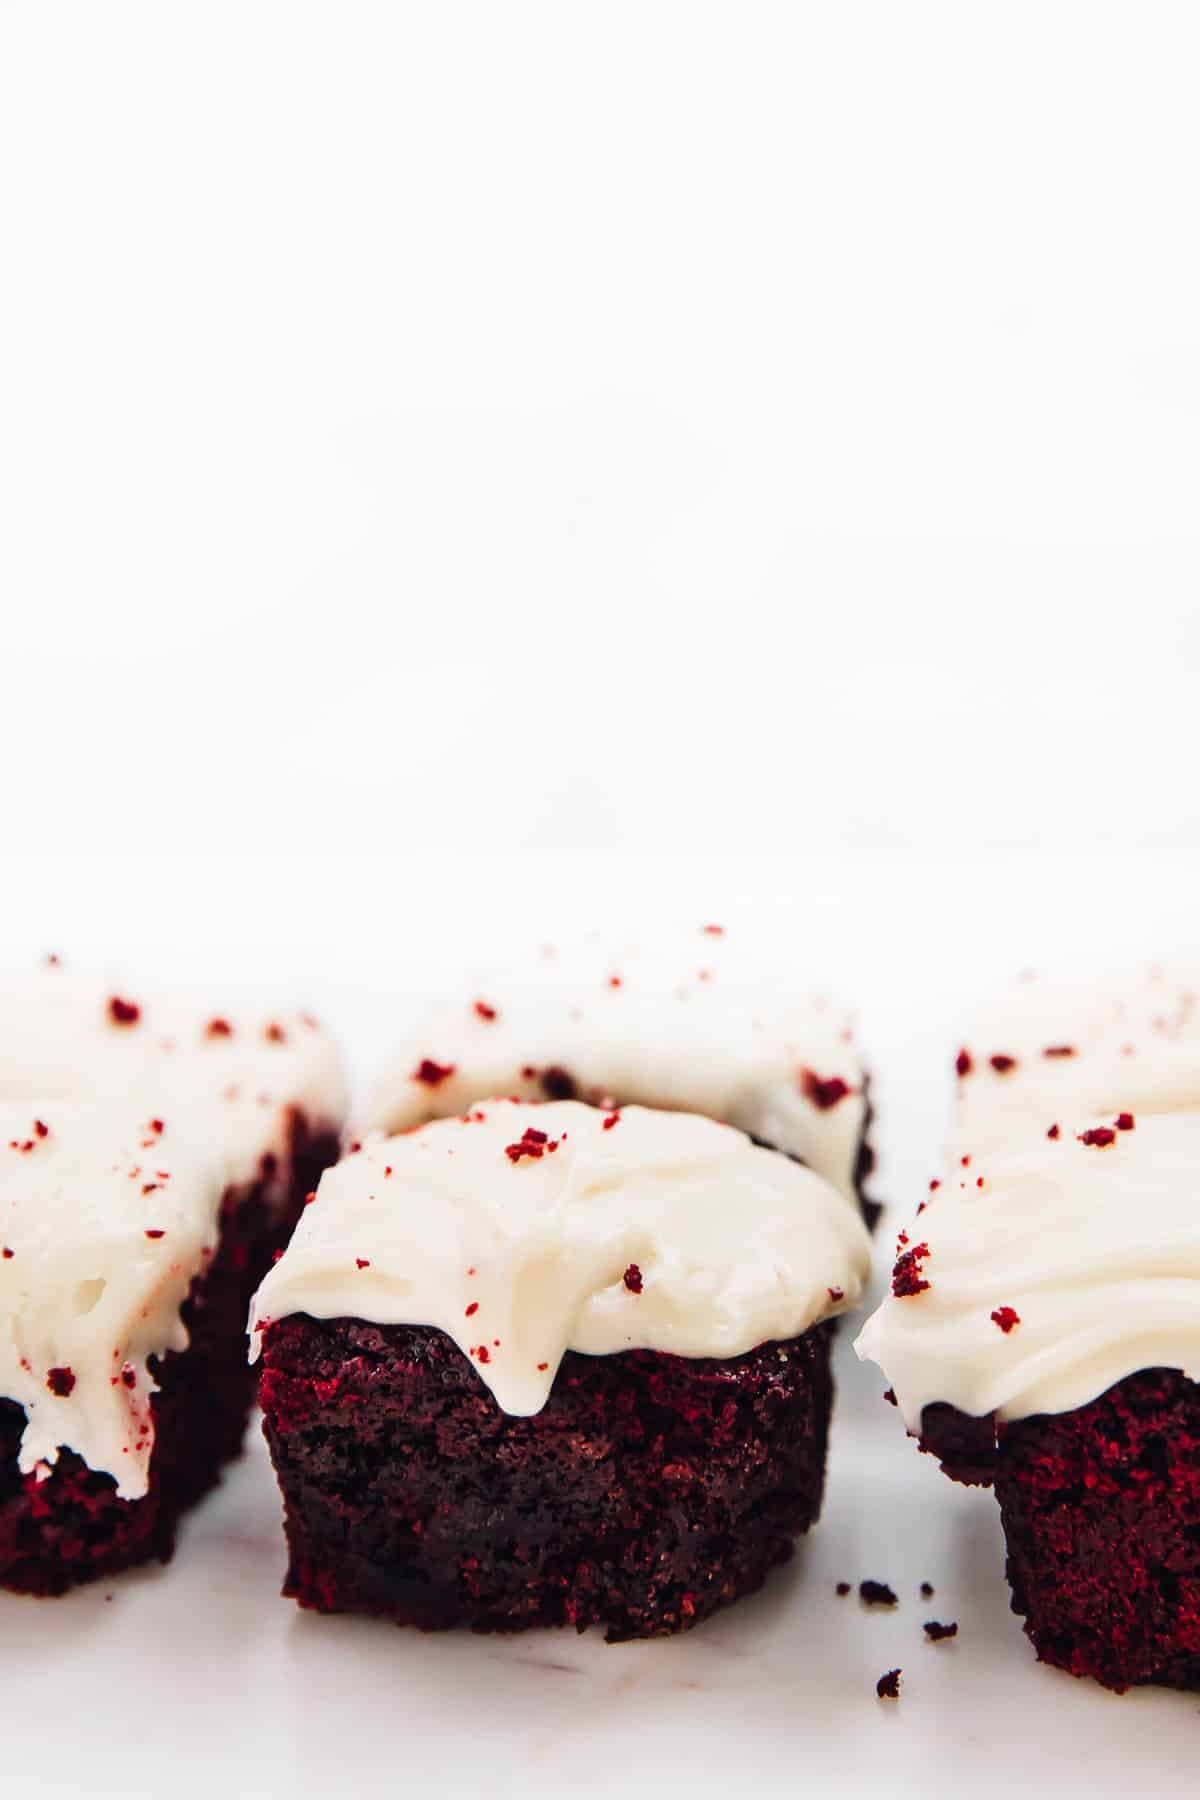 These Red Velvet Brownies are such a divine holiday treat! They're so amazing in flavour, and the vegan cream cheese frosting on top is the perfect final touch!